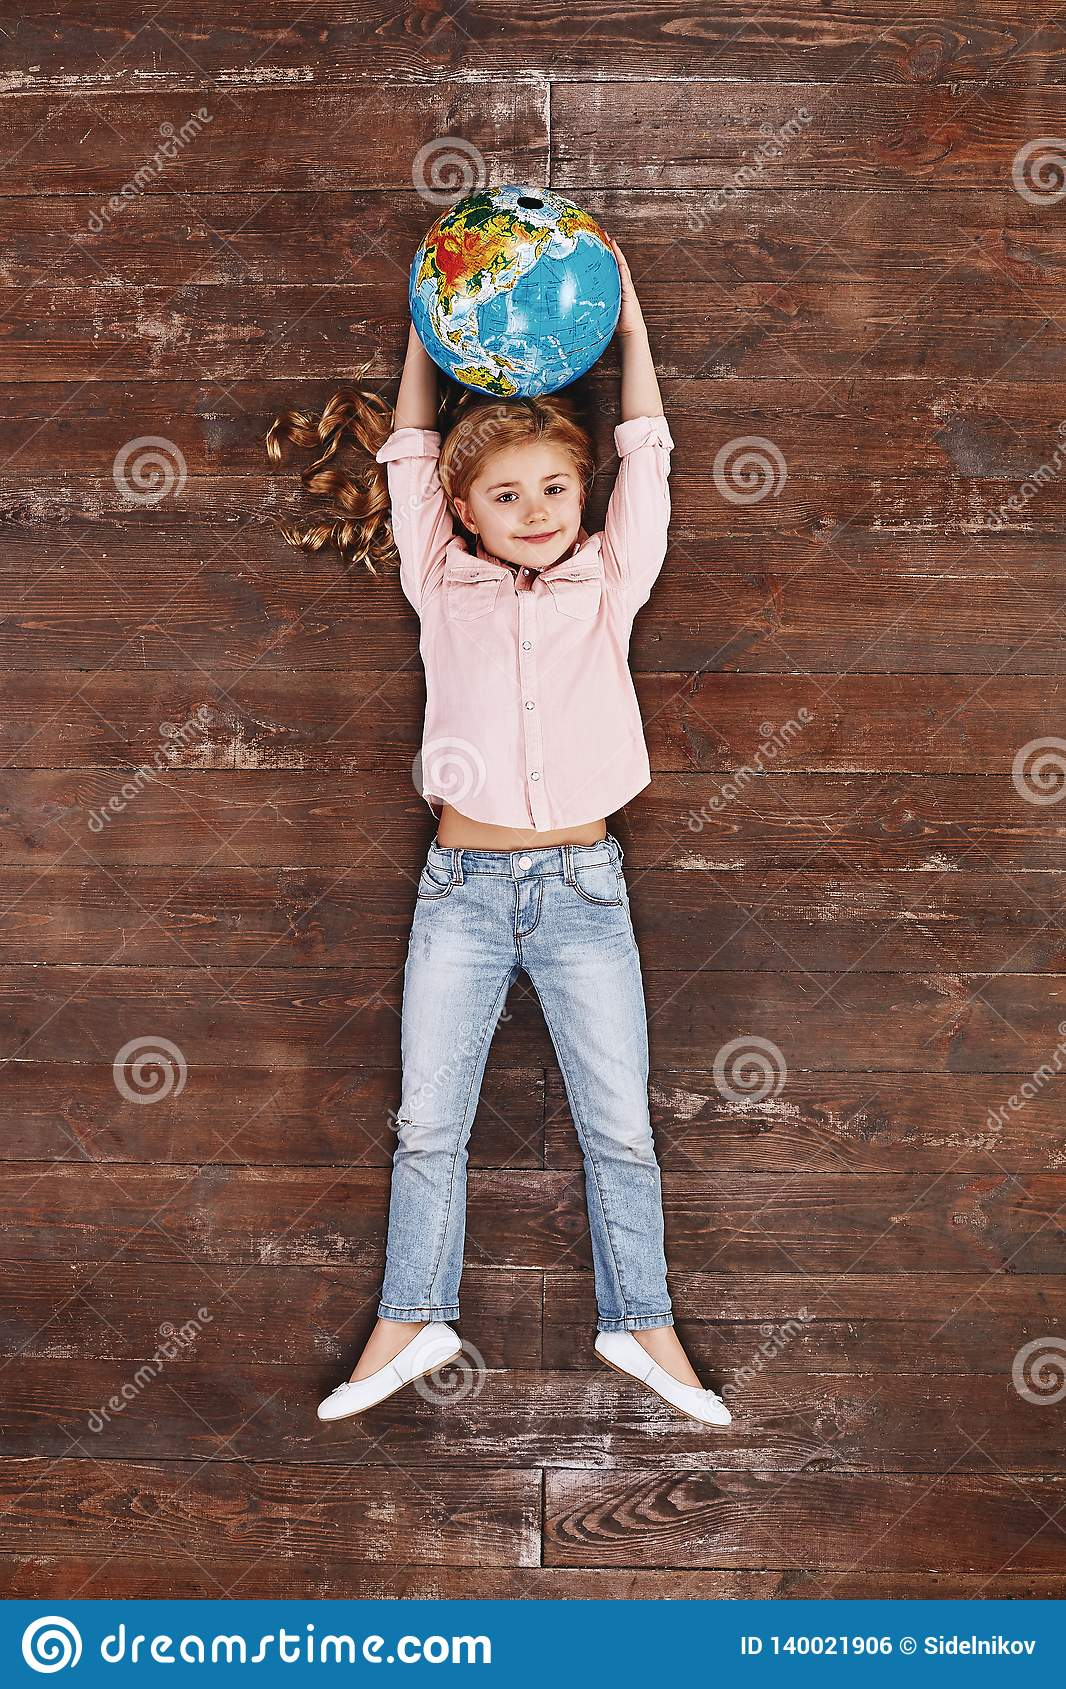 The world is mine. Girl holding globe, looking at camera and smiling